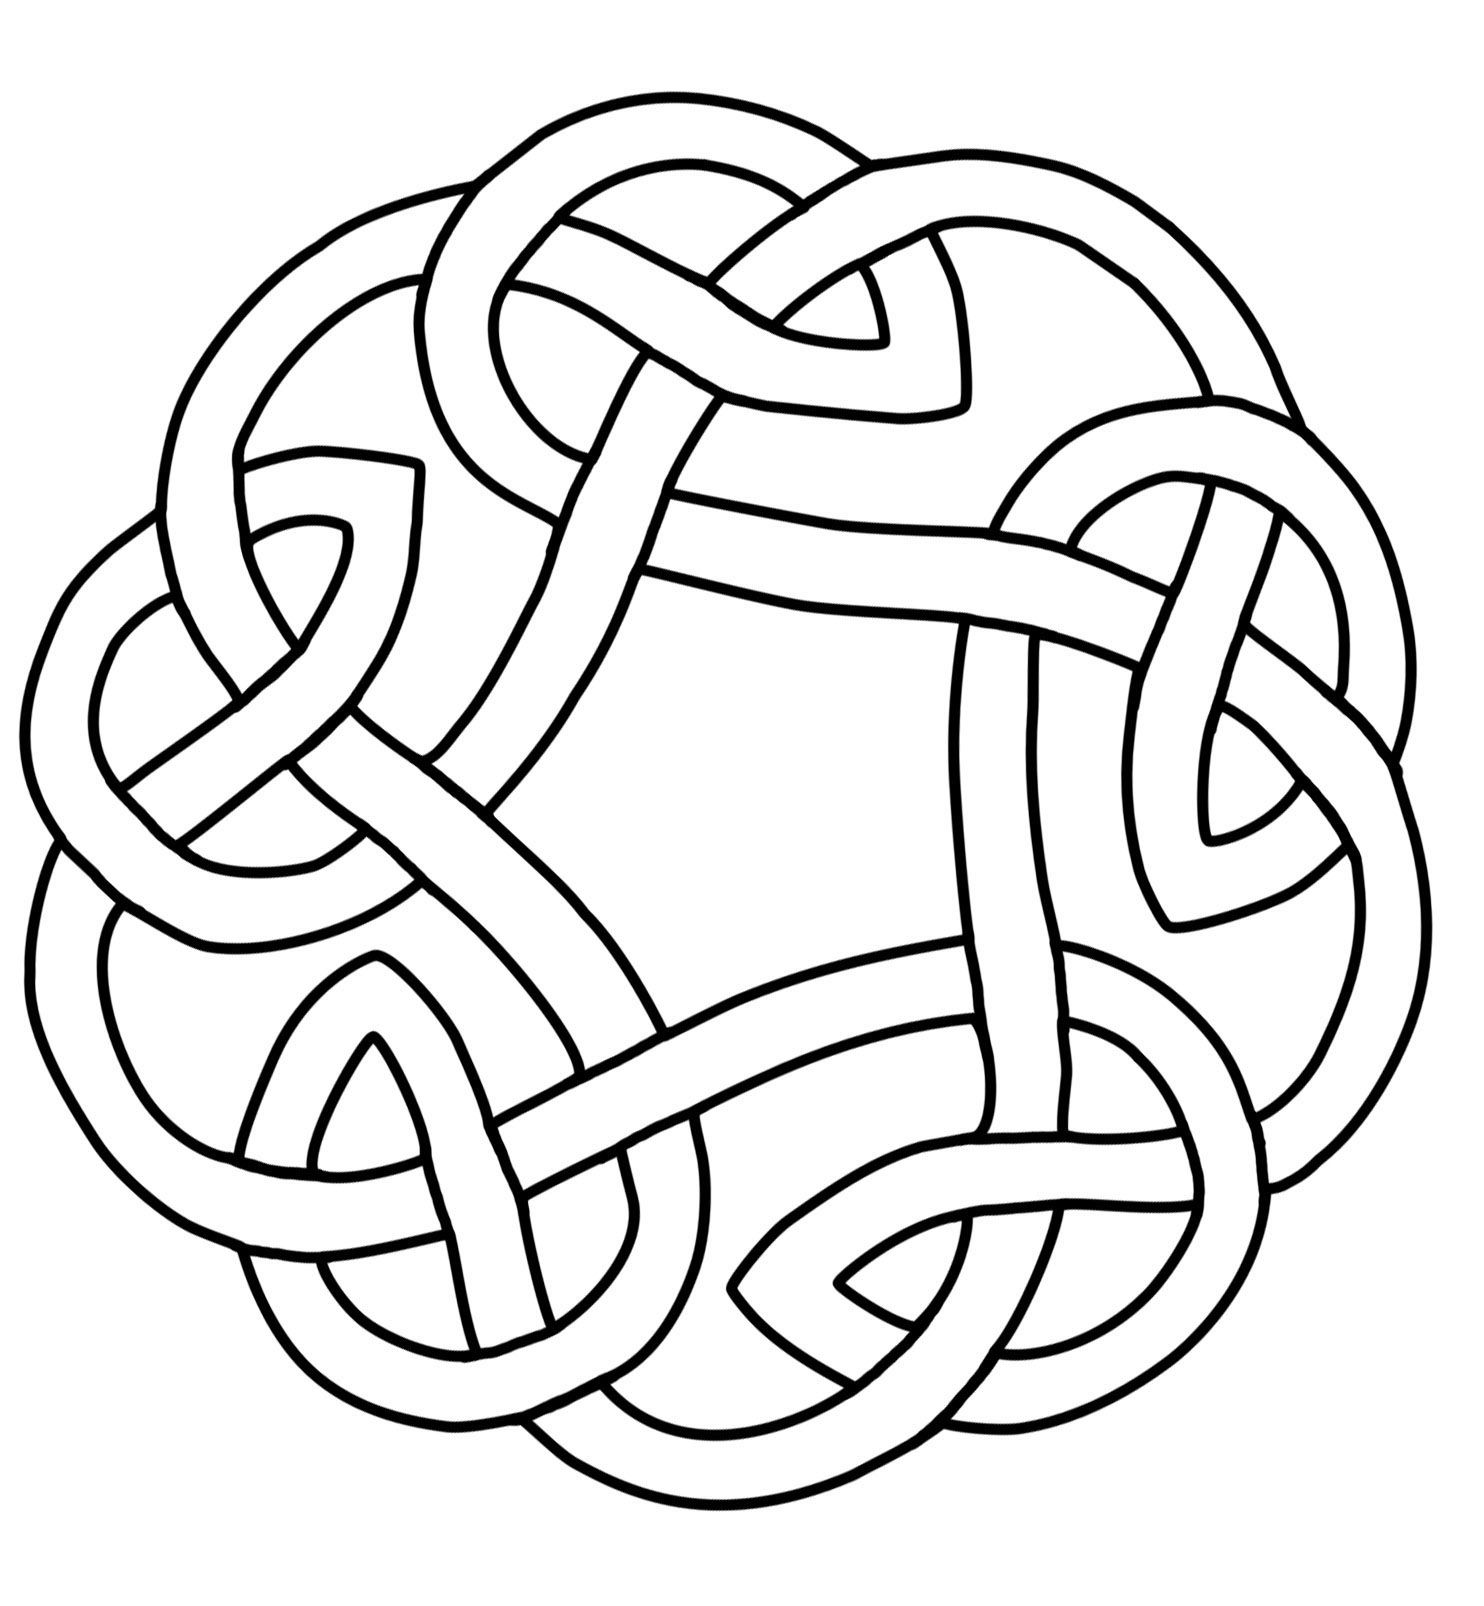 Celtic knot circle clipart best celtic knots pinterest celtic knot circle clipart best buycottarizona Gallery